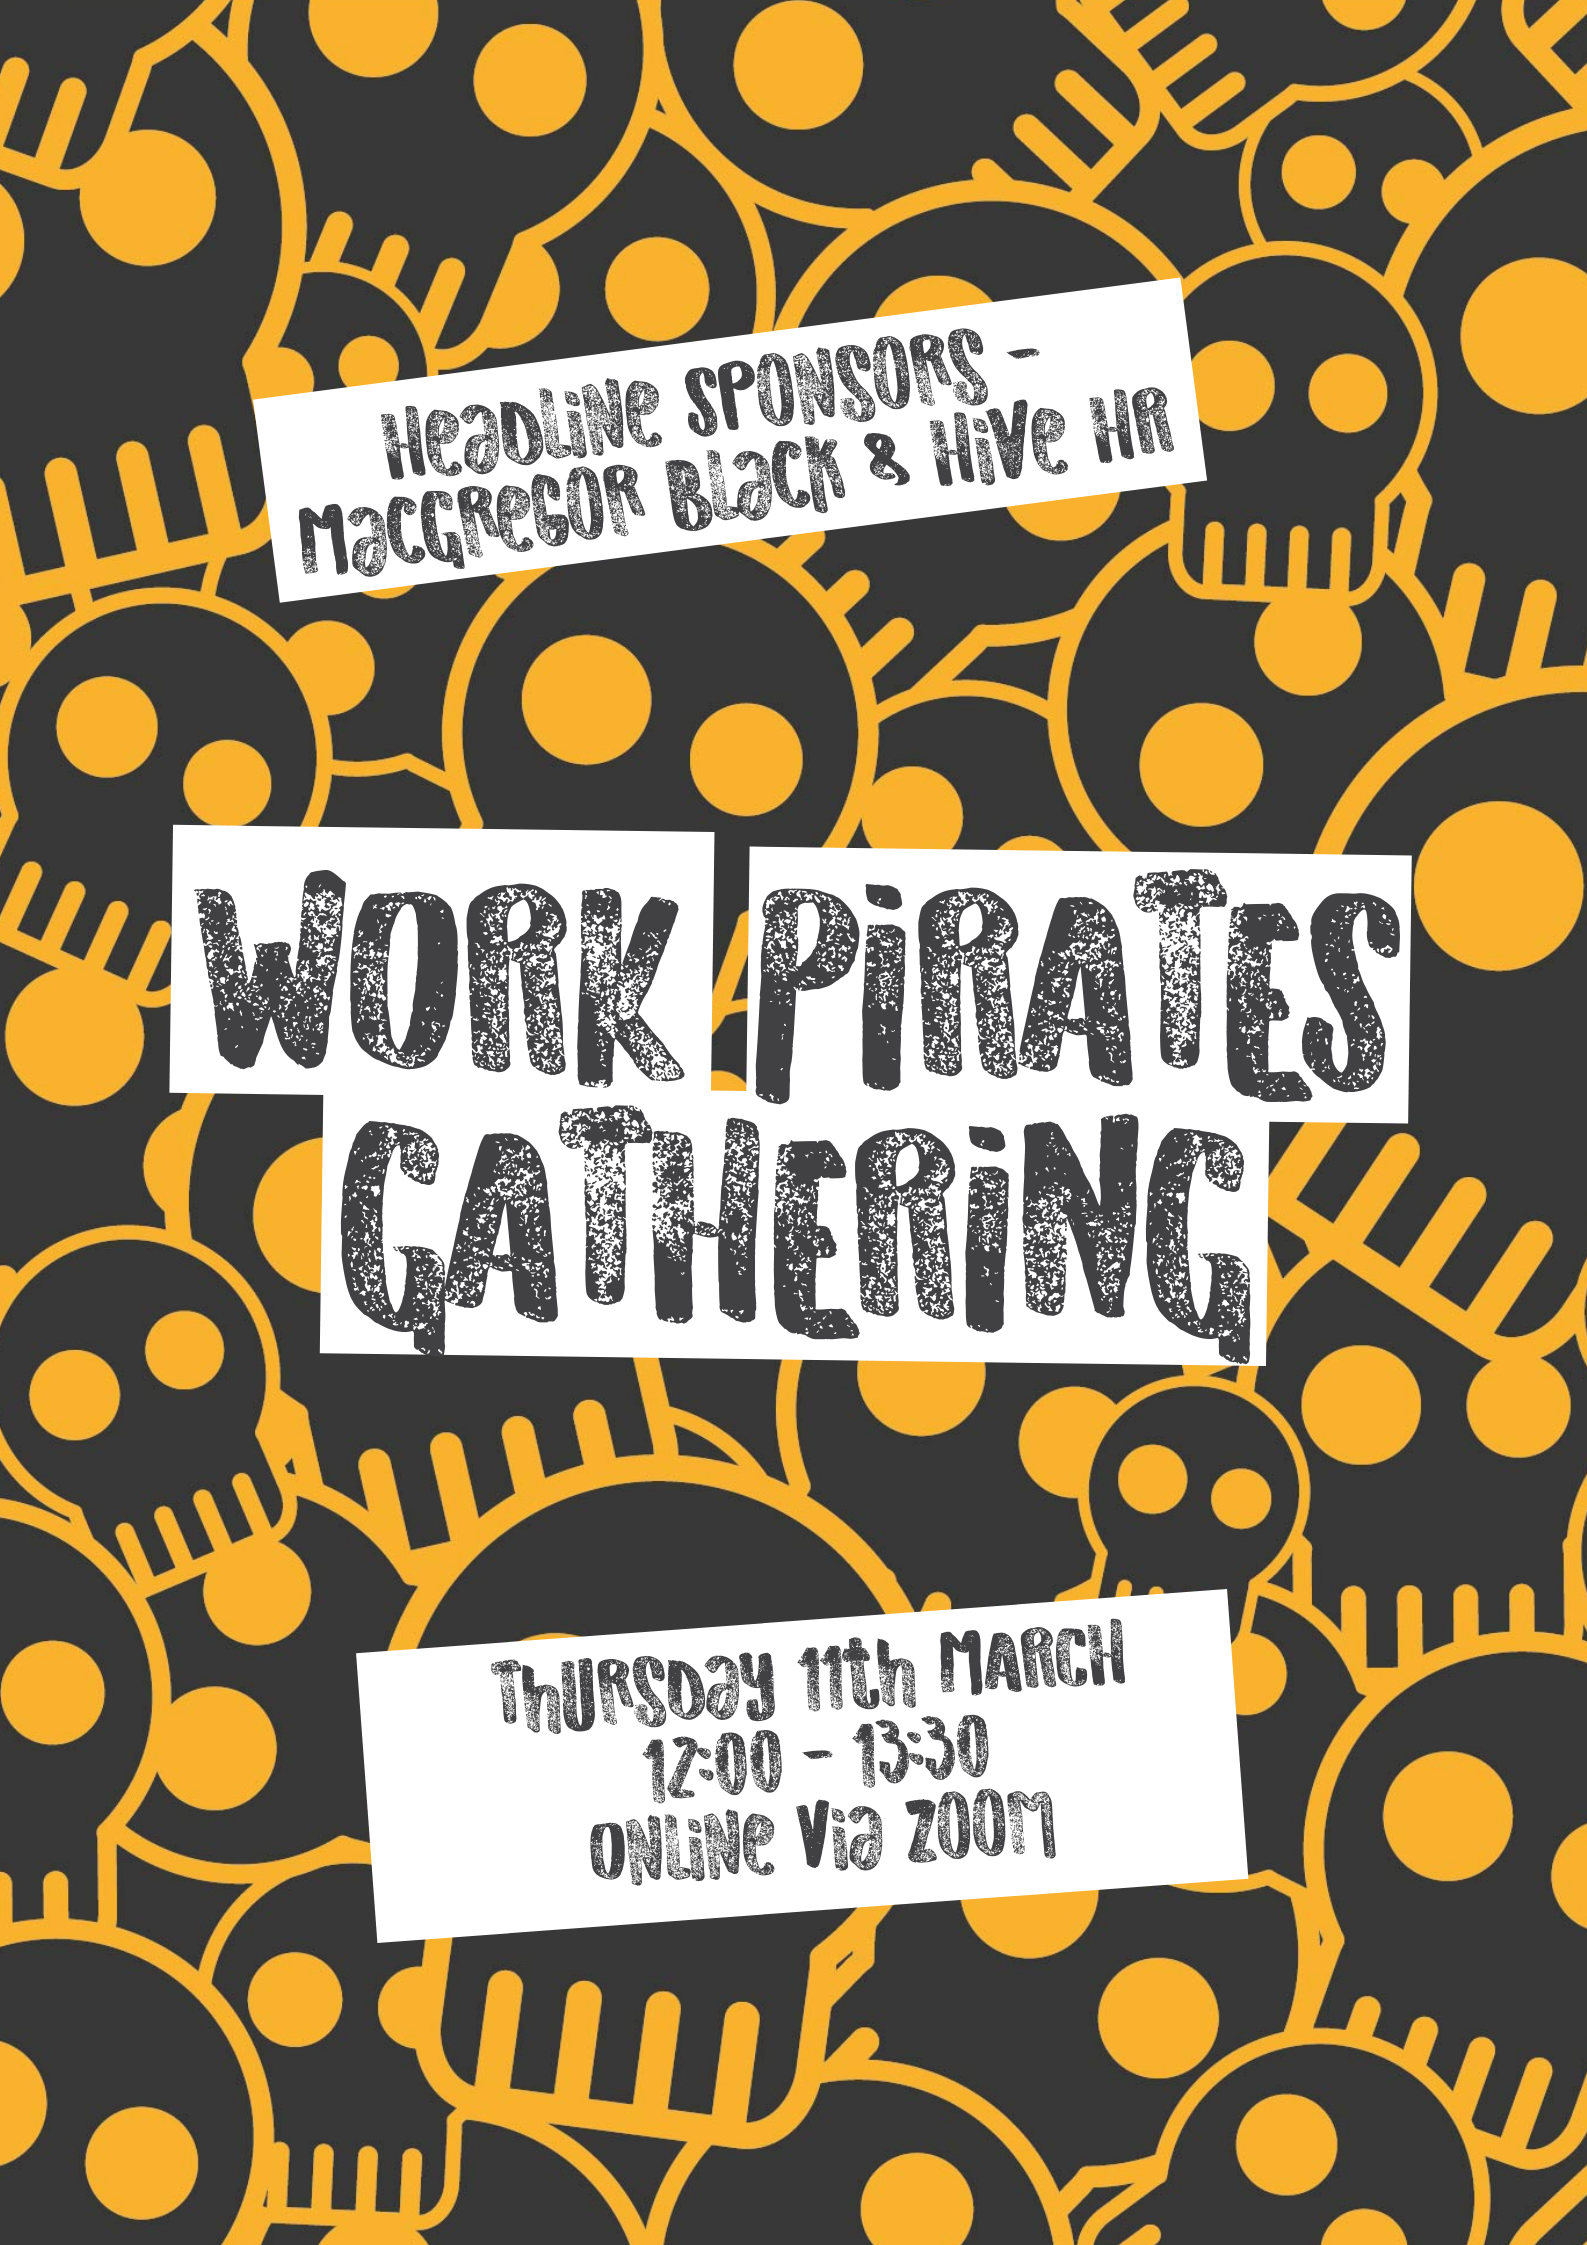 Copy of Work Pirates Gathering.png